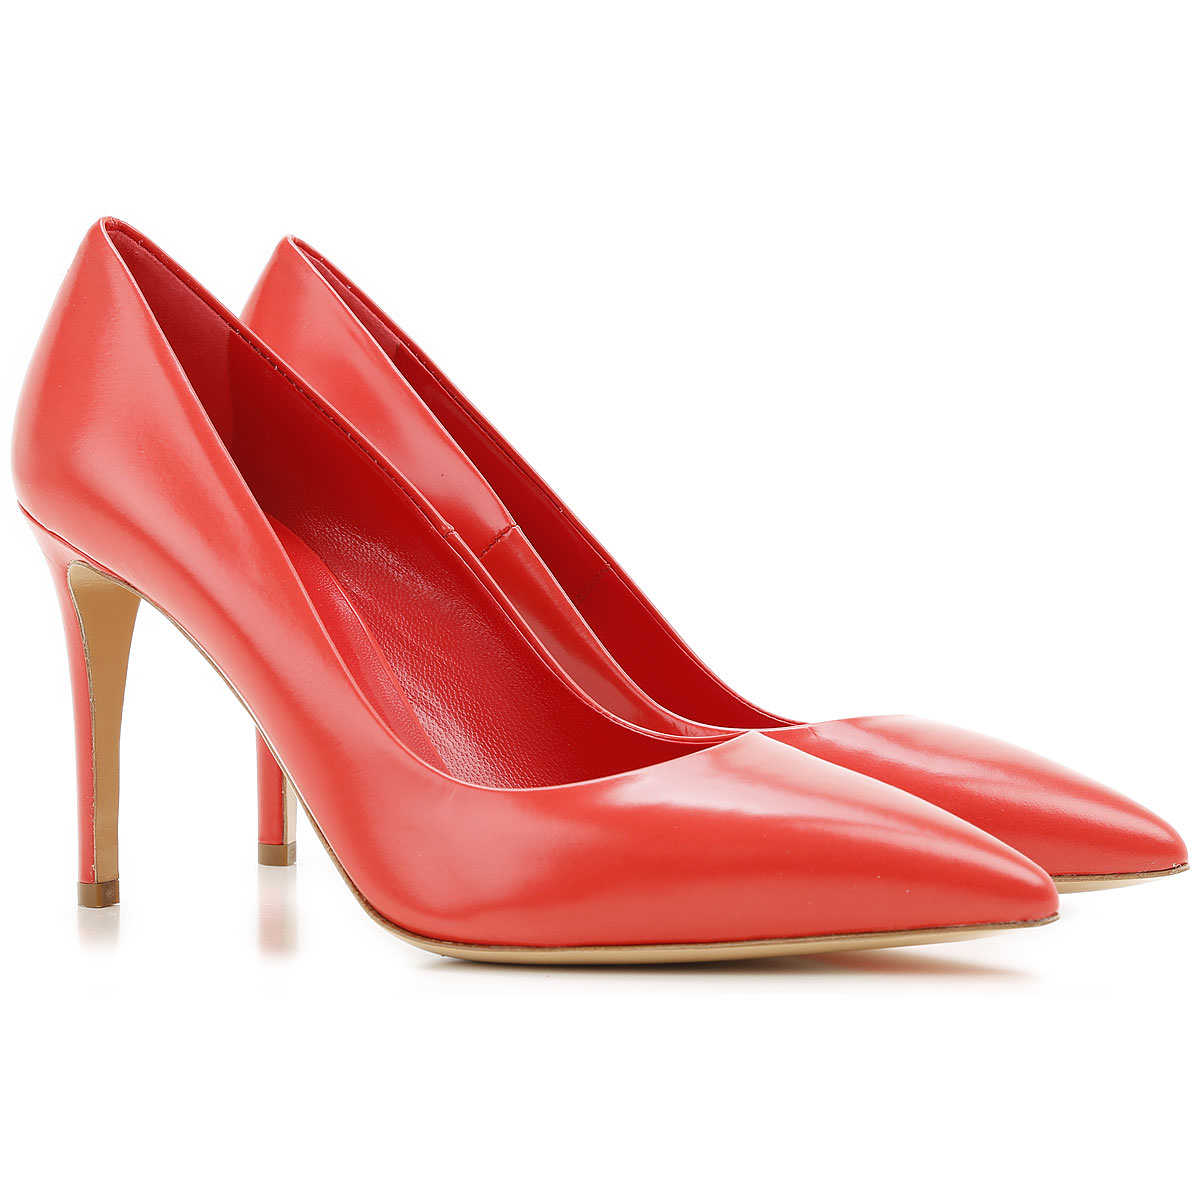 Nina Lilou Pumps & High Heels for Women On Sale in Outlet Tomato Red DK - GOOFASH - Womens HIGH HEELS